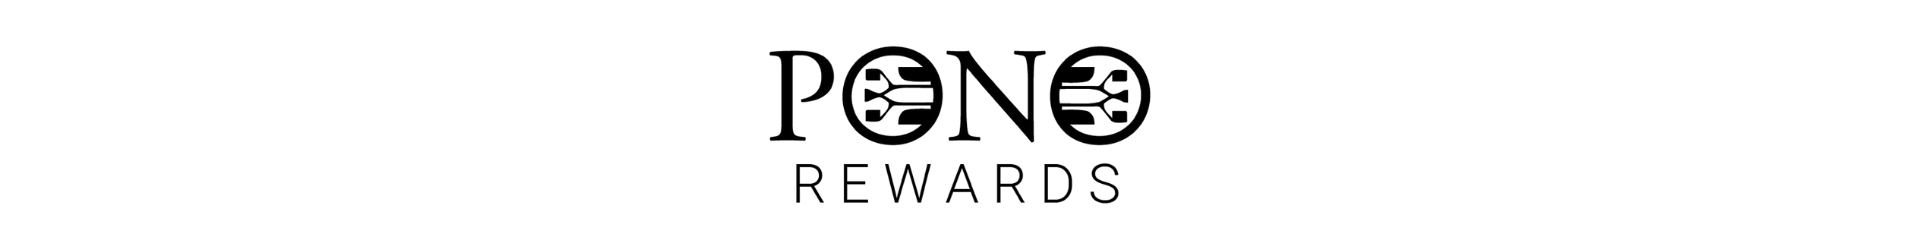 PONO REWARDS.png